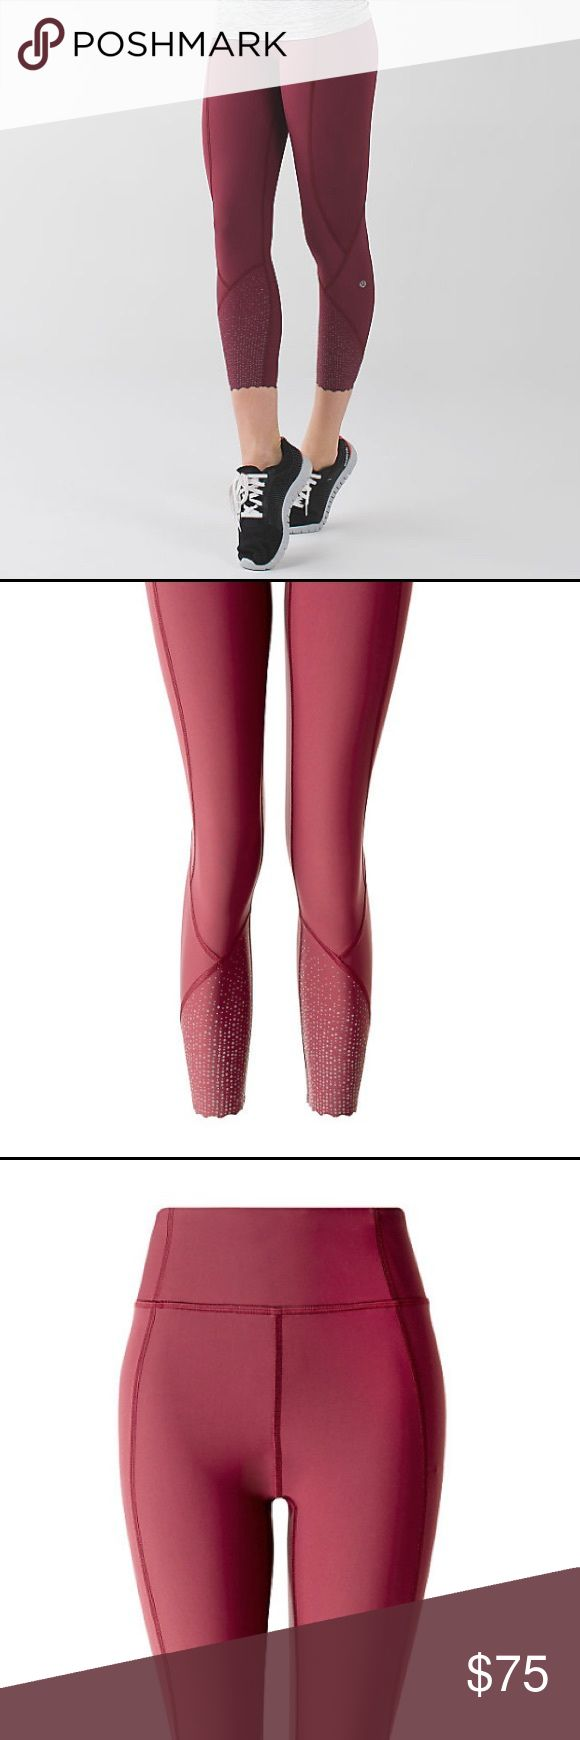 Lululemon Tight Stuff Tights Super cute pants with reflective bottoms. Worn a couple times.... just the tight fit is not for me. They are a burgundy/wine color.               https://shop.lululemon.com/p/women-pants/Tight-Stuff-Tight-II/_/prod8260099?skuId=3714507&color=LW5LK3S_023188&locale=en_US&sl=US&CAWELAID=120278590000067652&CID=Google:US122818&sl=US&locale=en_US&gclid=CjwKEAiAs_PCBRD5nIun9cyu01kSJAA-WD-rx9Nhe9I3ZYv8QnB3IuNf6KVp9fxCgdd9KC1QeF0tyxoCzR3w_wcB lululemon athletica Pants…